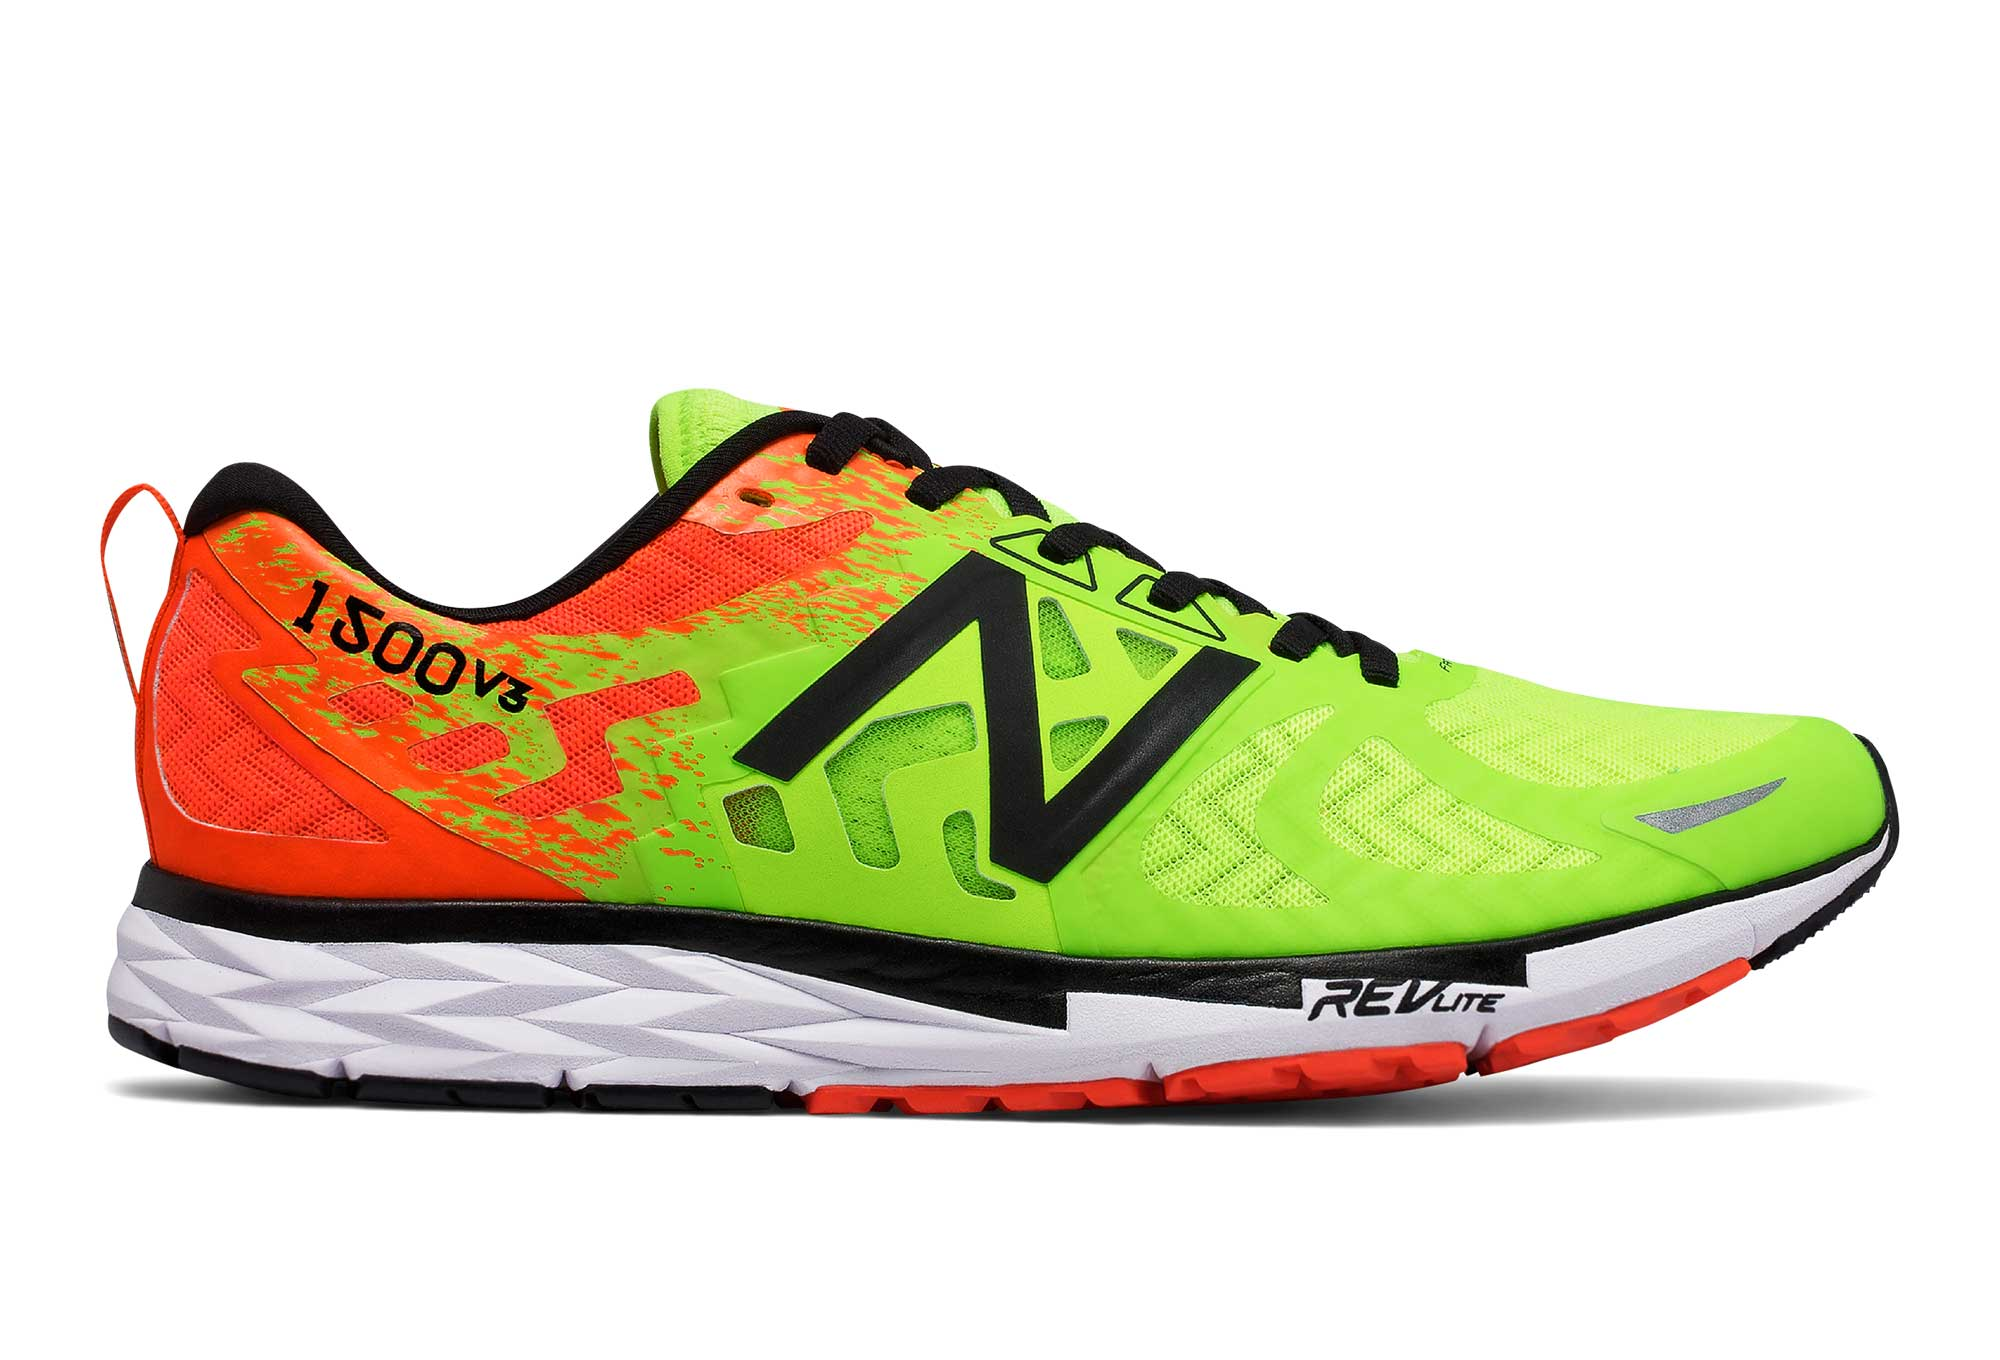 new balance zapatillas triatlon